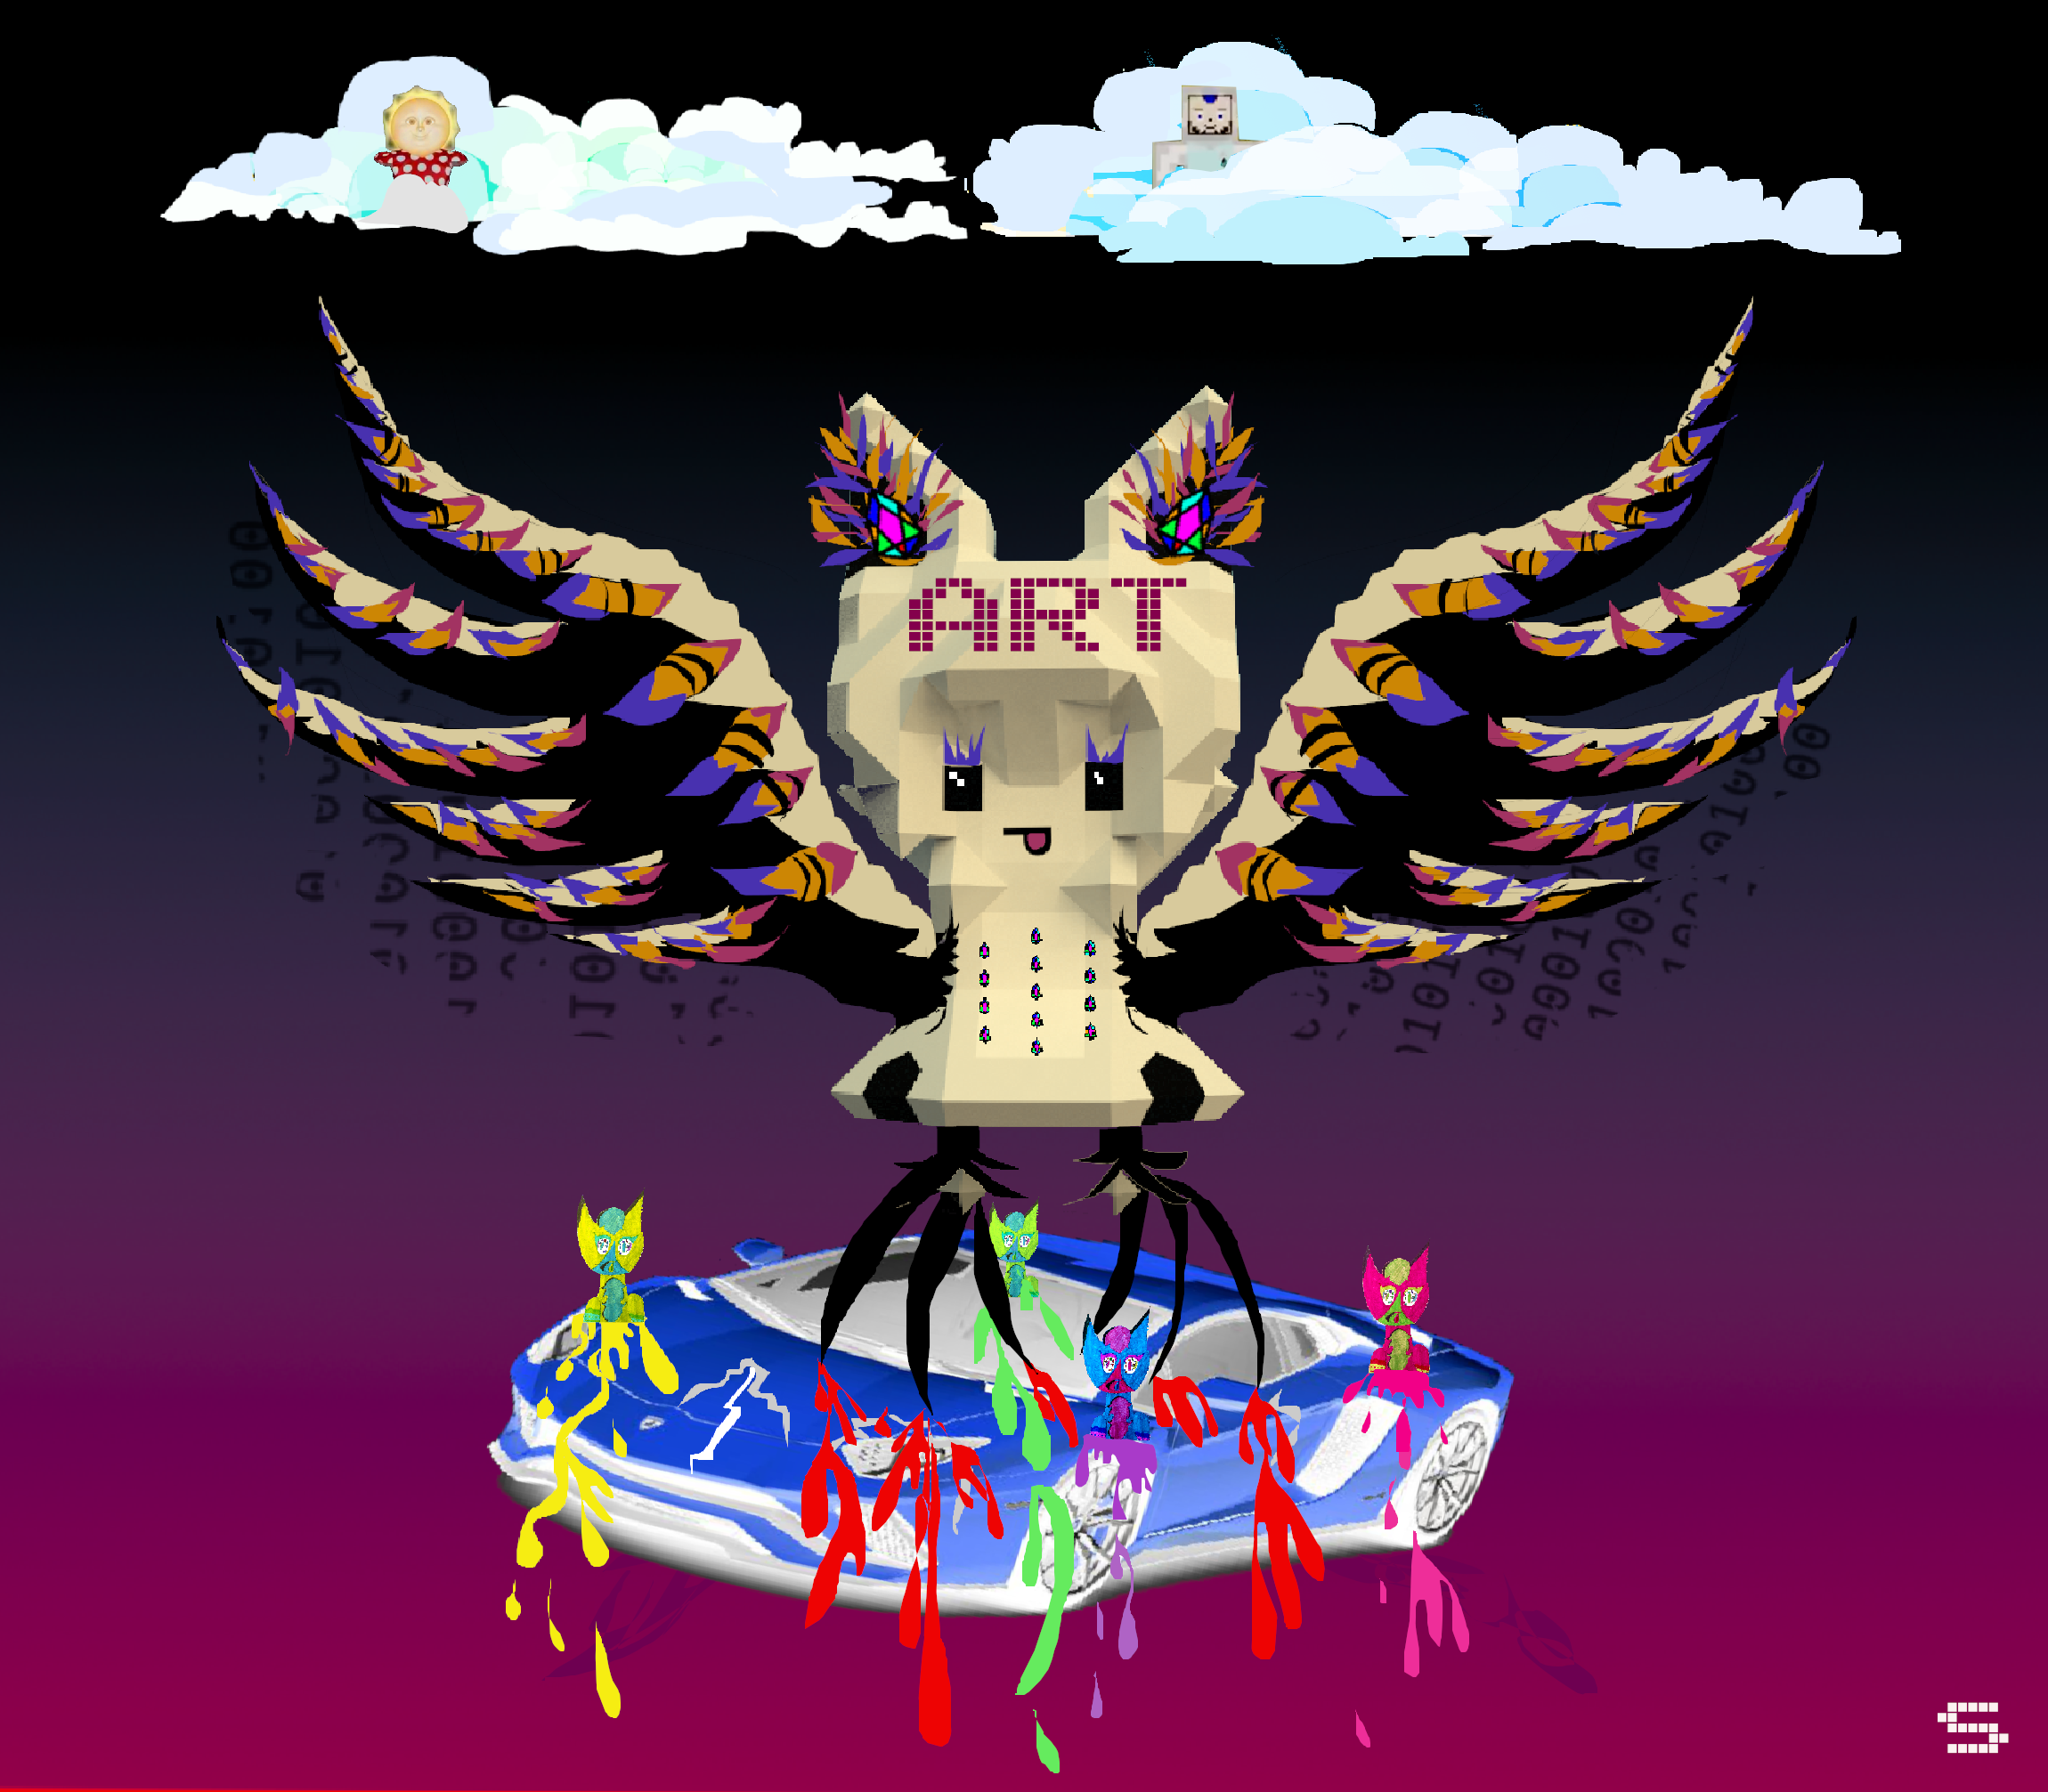 /crypto-2019-when-making-art-i-could-give-a-fu-k-about-lambos-1dd3652b61ca feature image